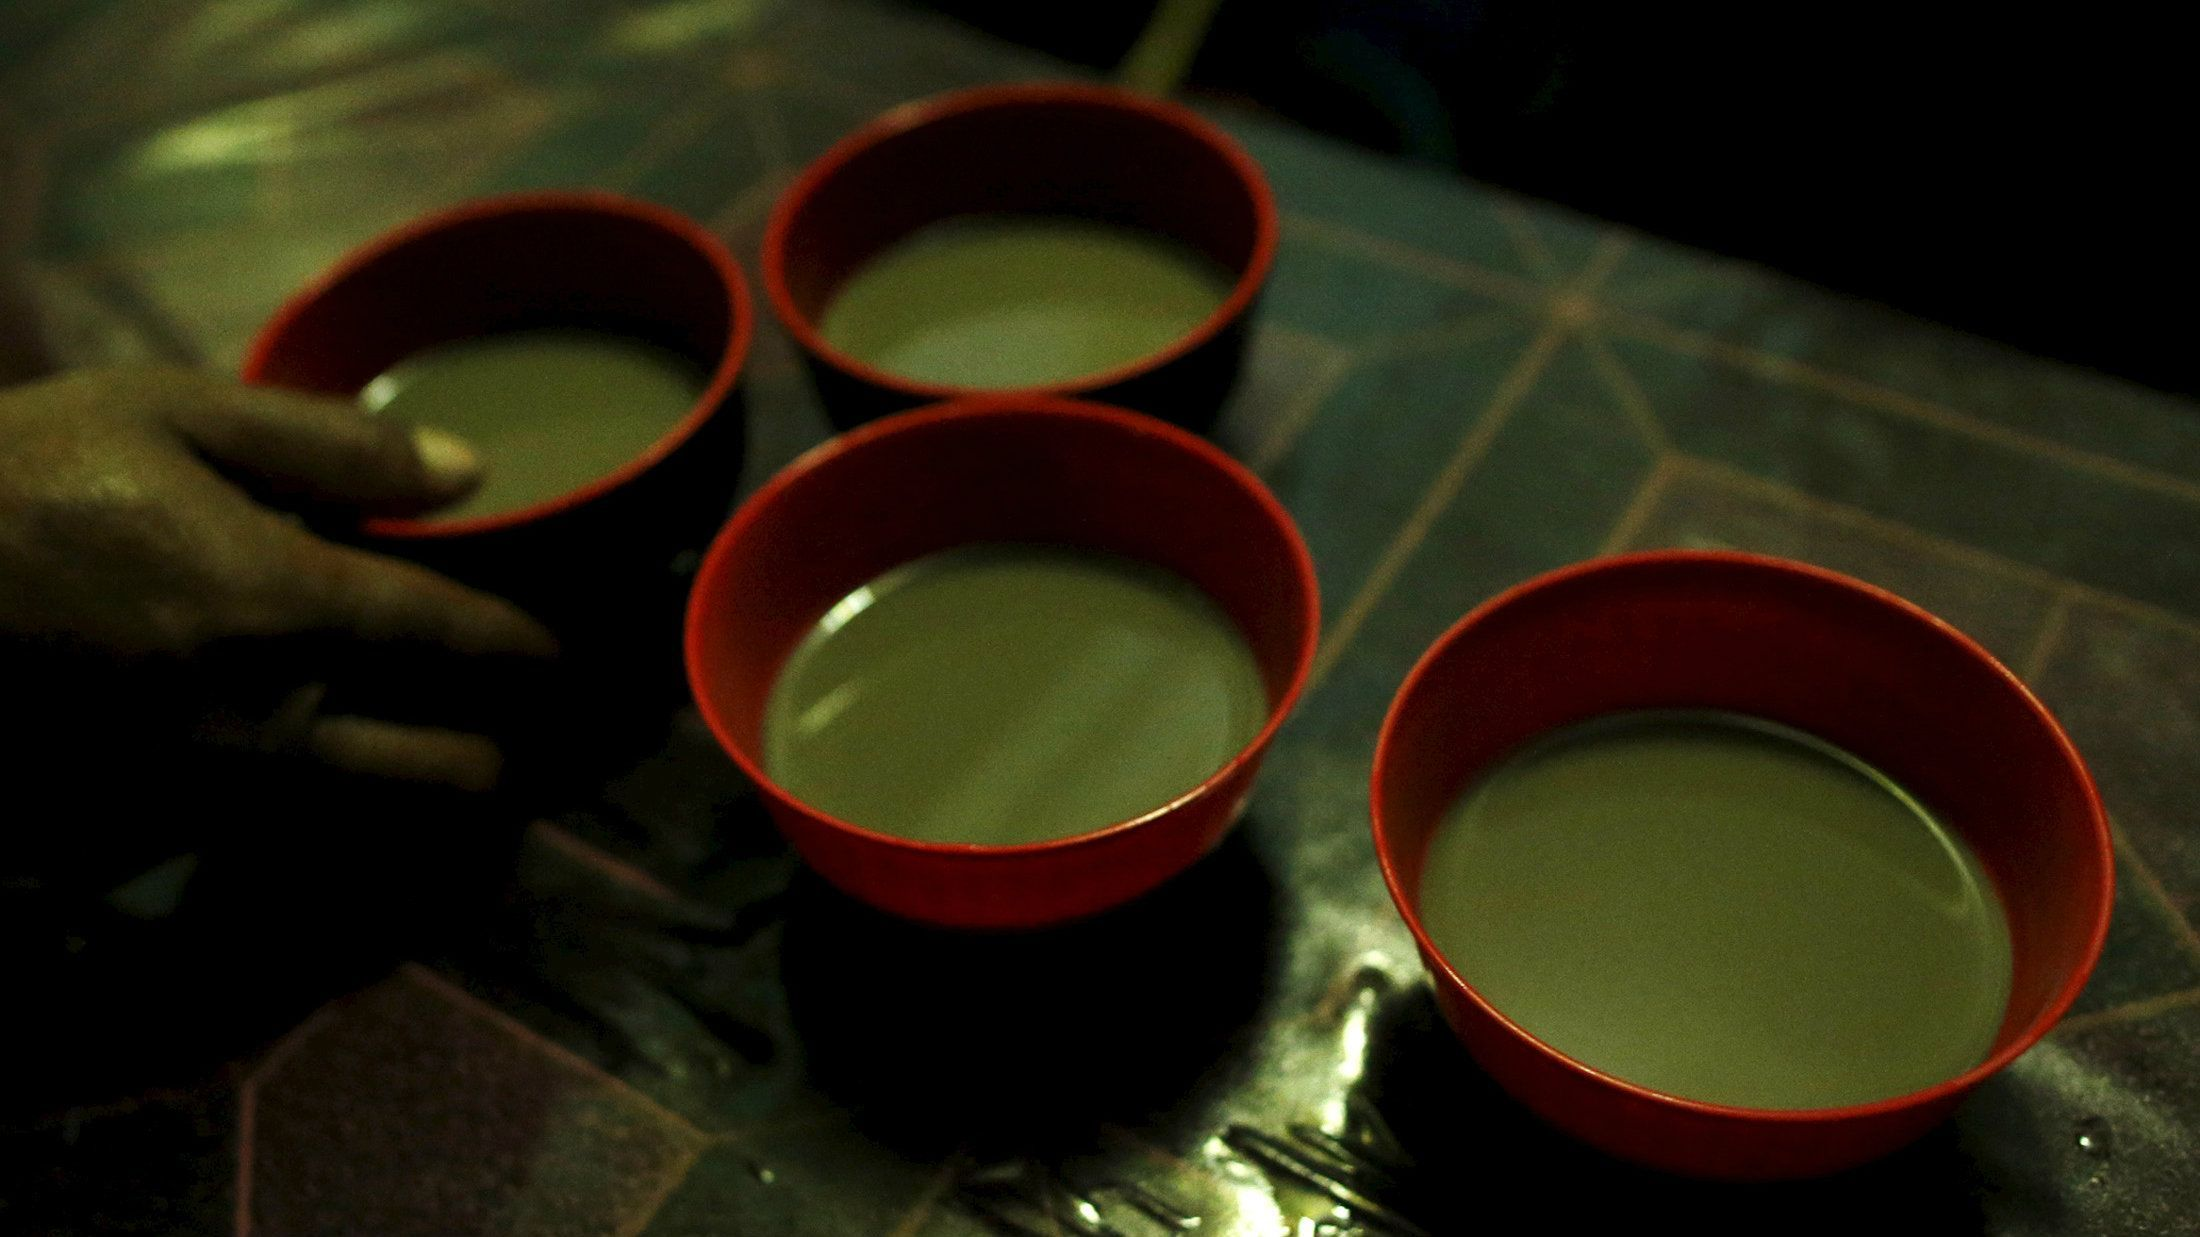 Kava is a tropical shrub in the pepper family native to